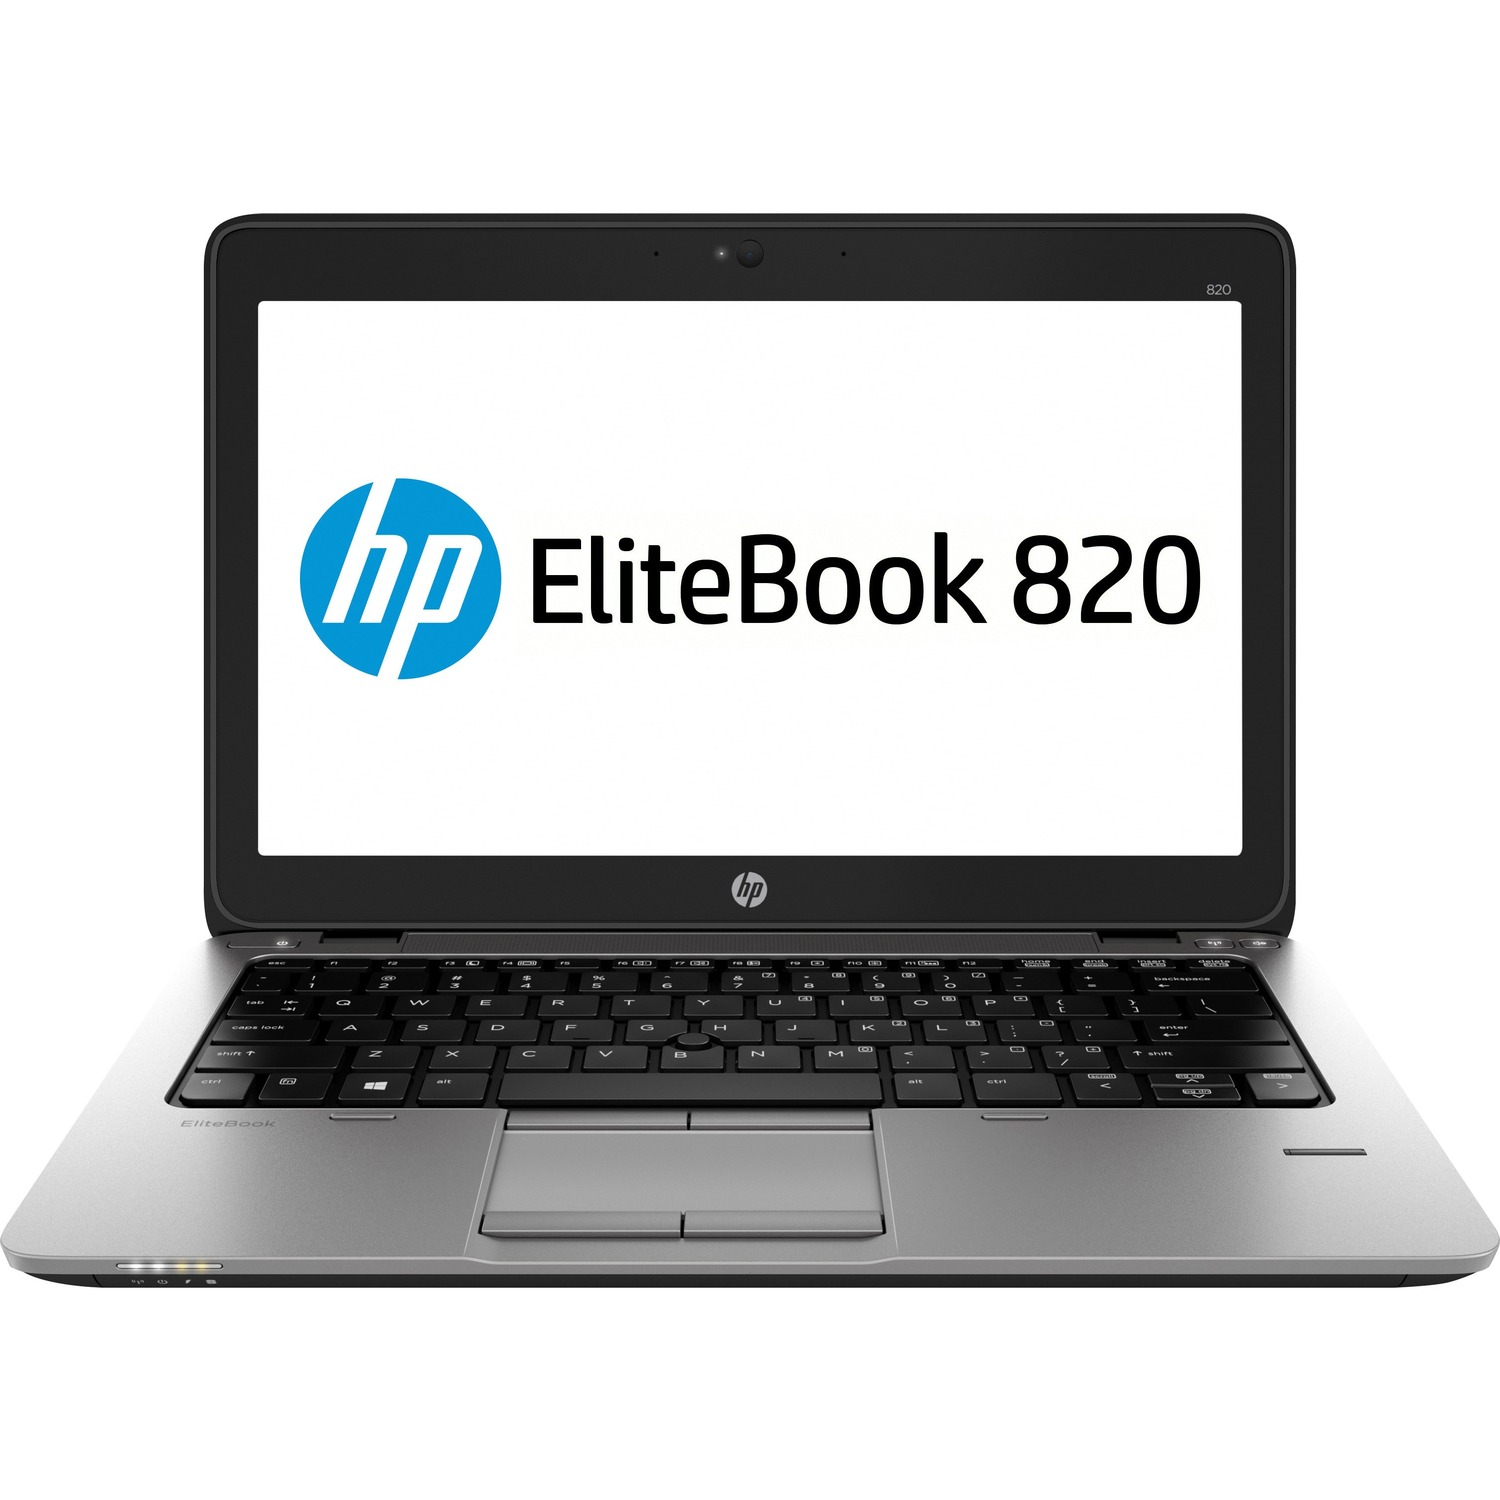 HP EliteBook 820 G2 31.8 cm 12.5inch LED Notebook - Intel Core i5 i5-5300U 2.30 GHz